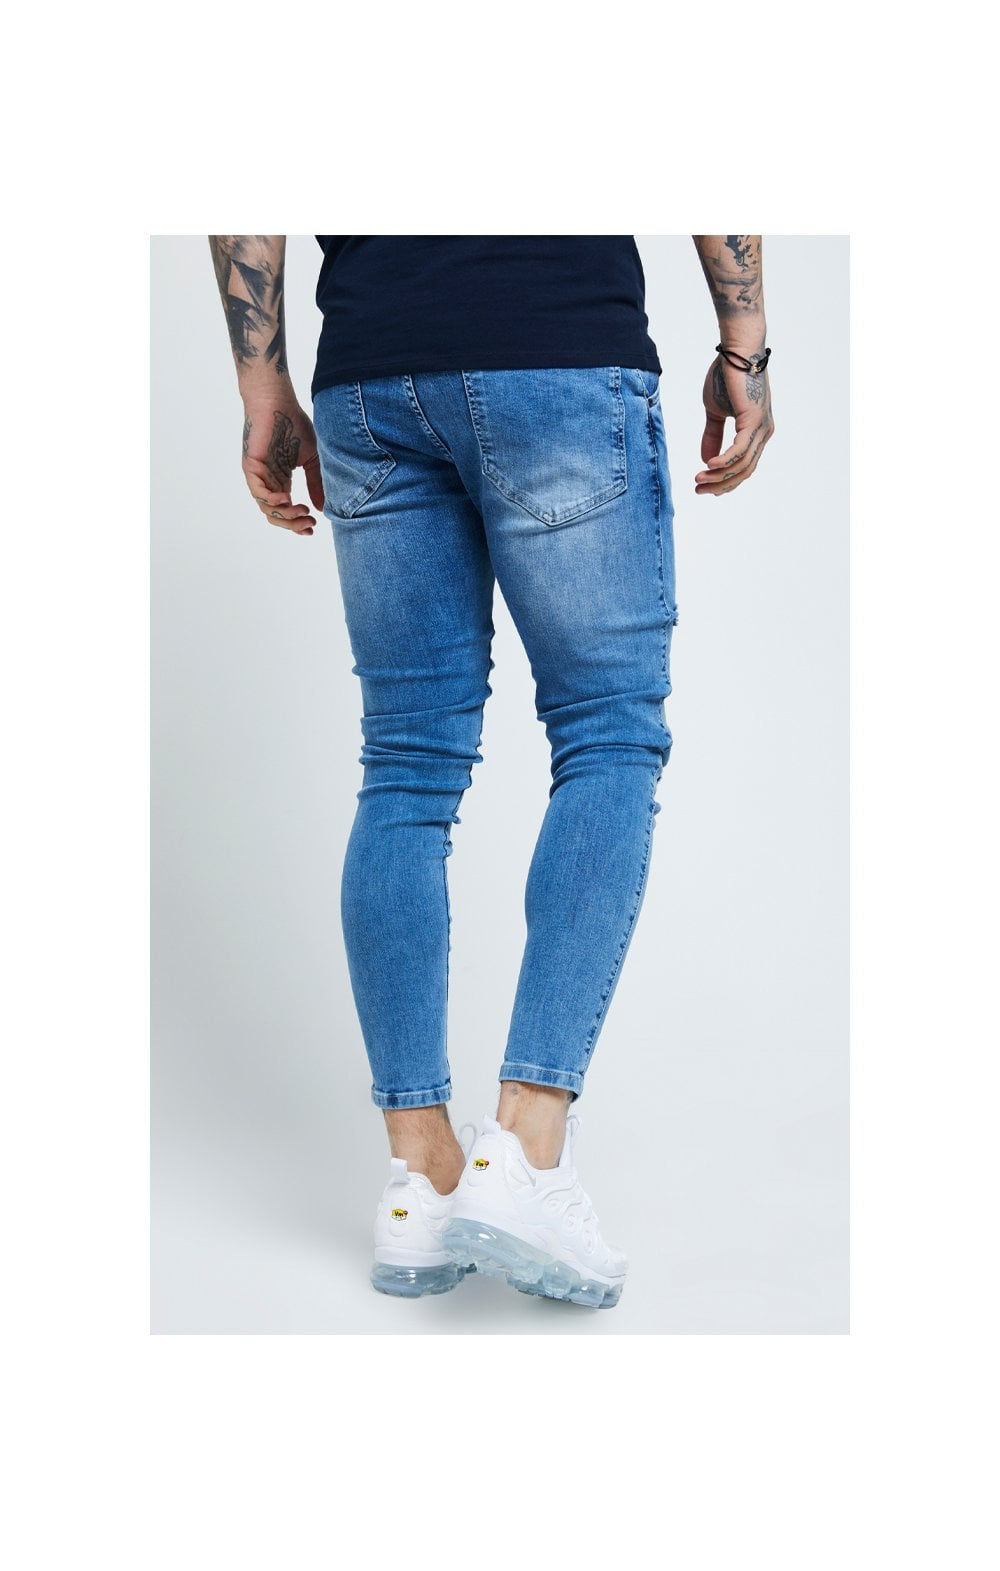 SikSilk Distressed Skinny Denims - Mid Wash (2)